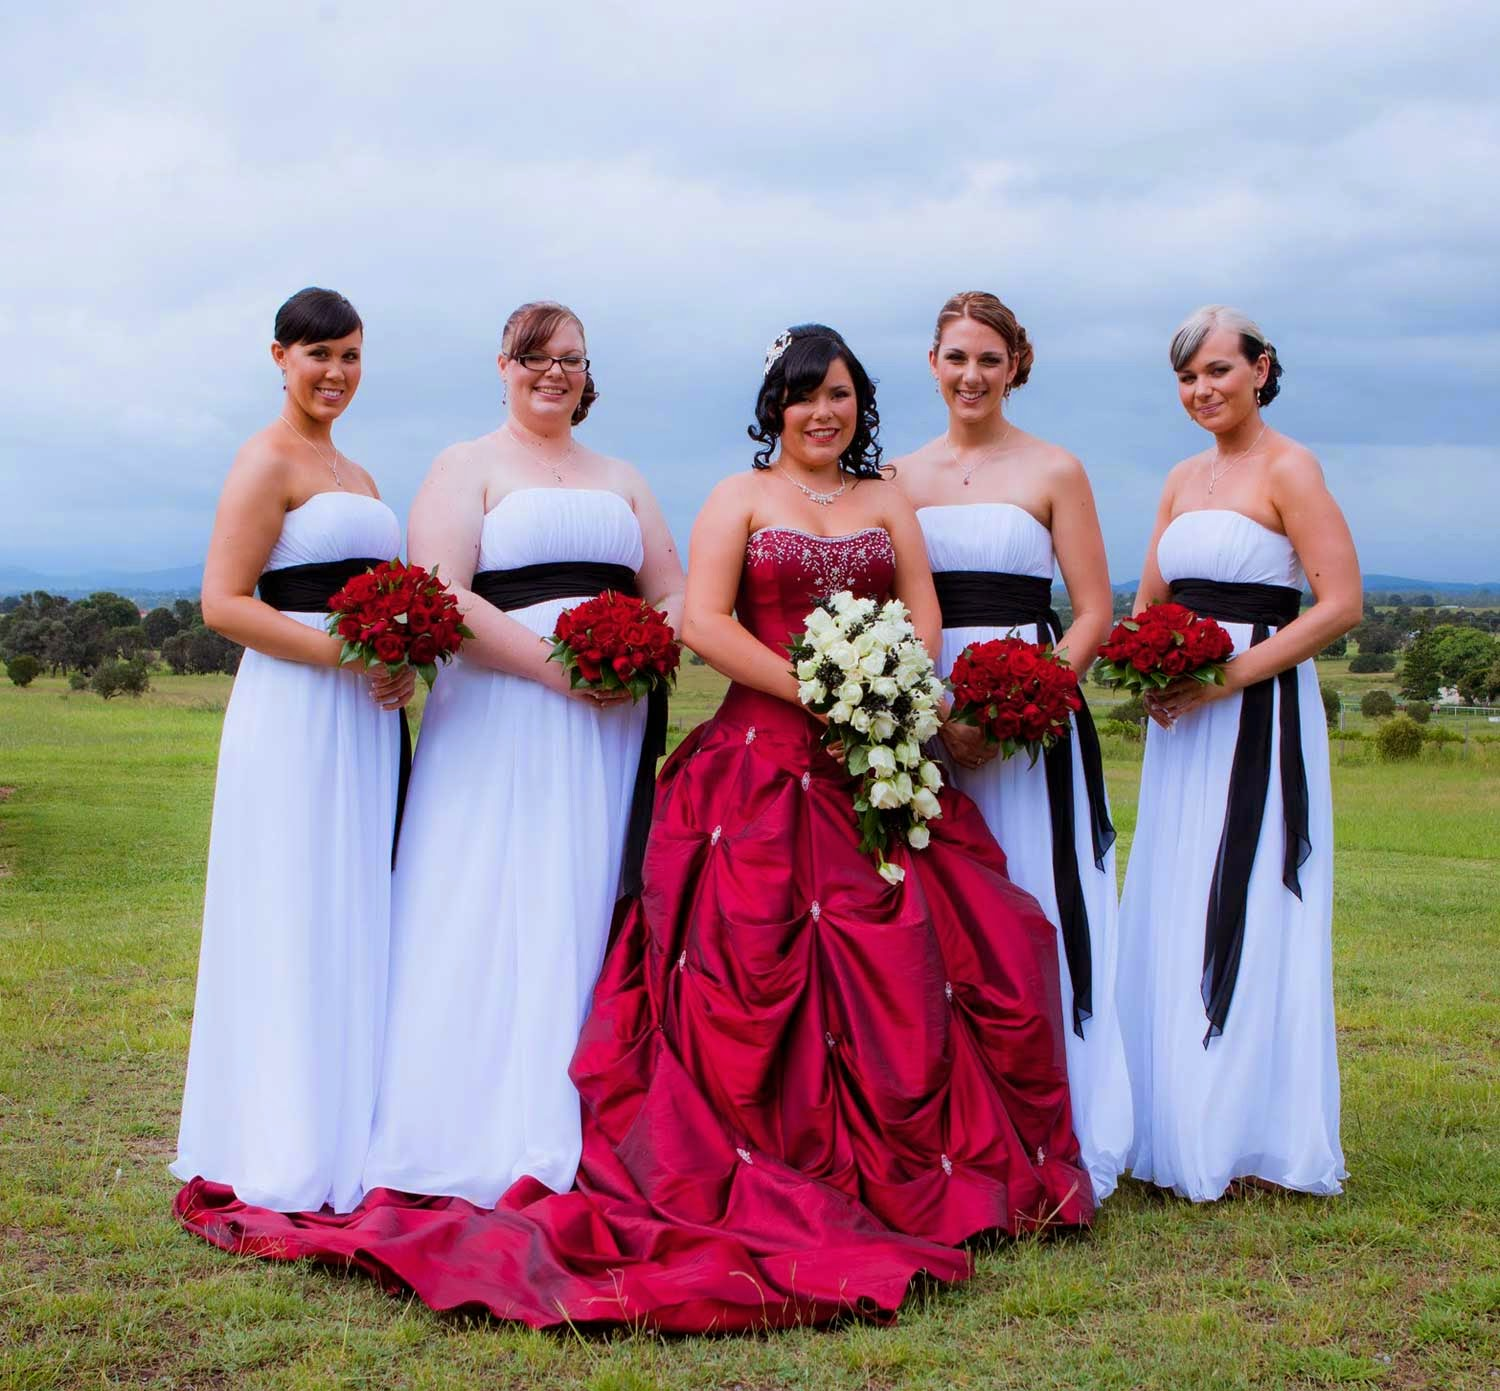 Red Wedding Dress White Bridesmaids Style Design Ideas